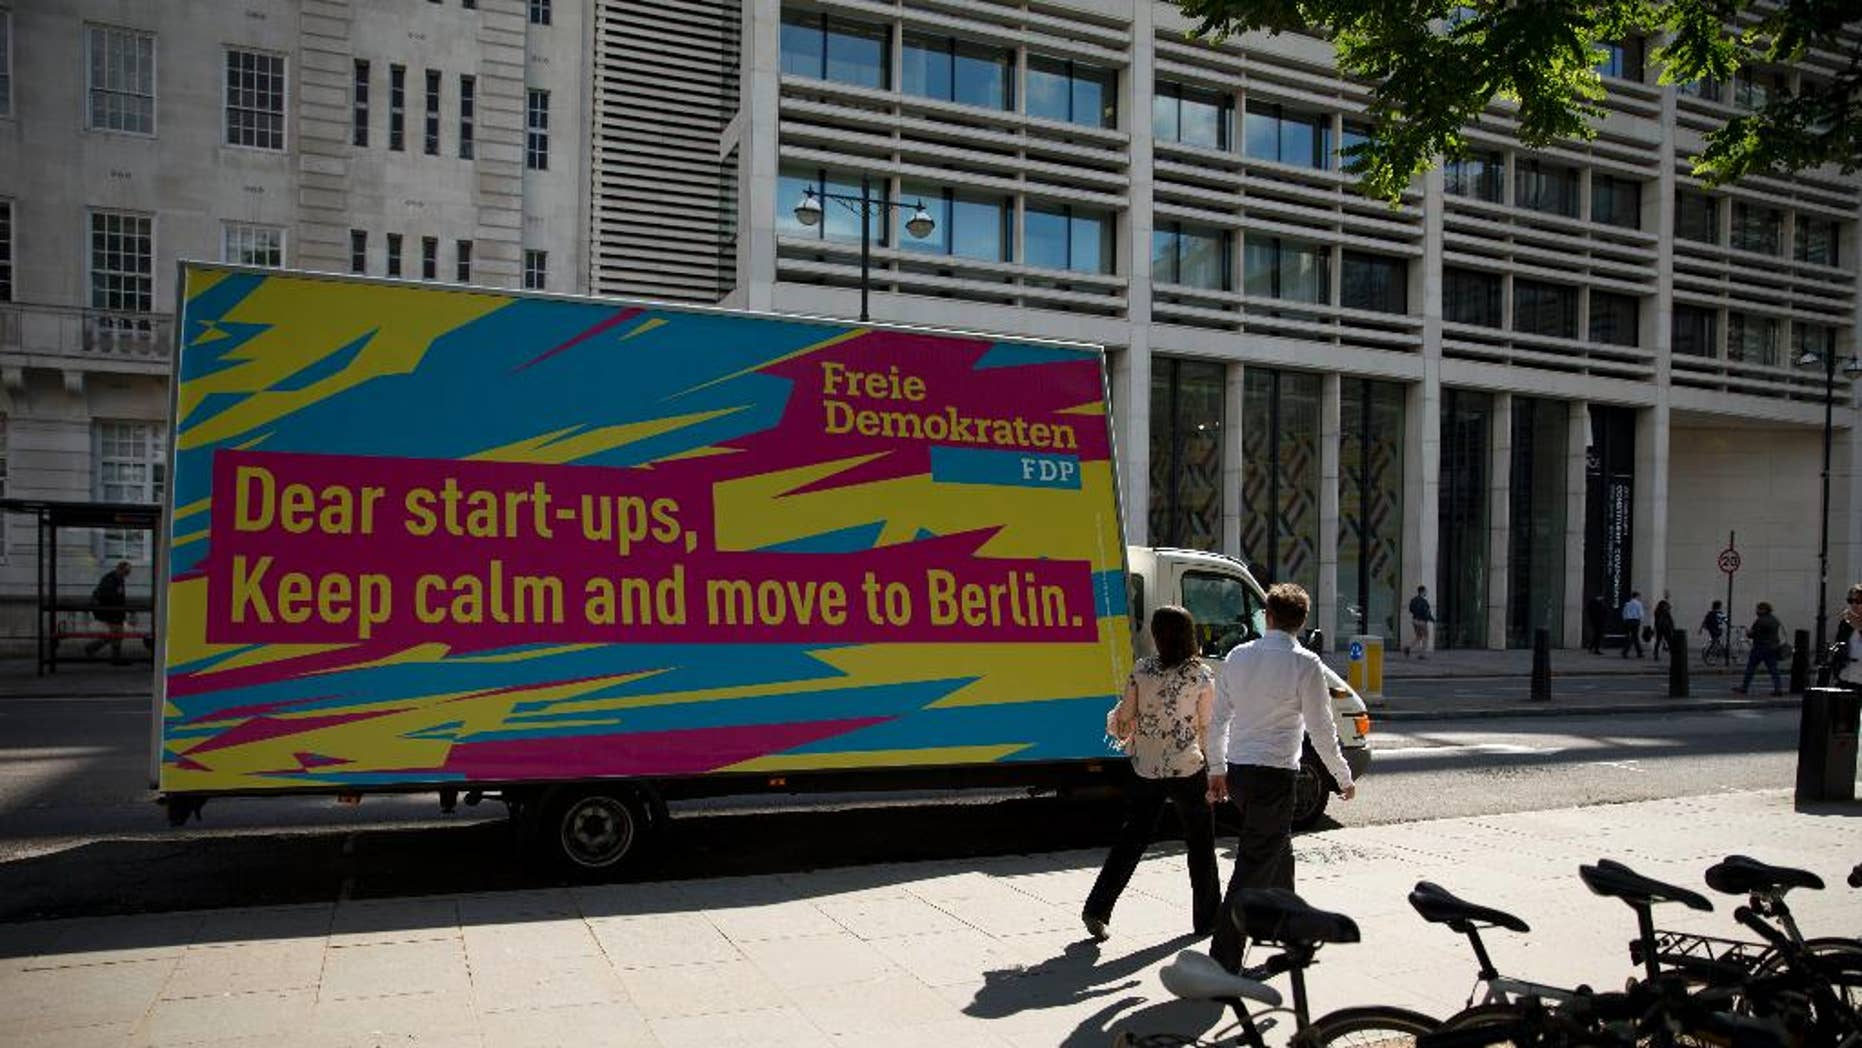 An advert suggesting start-up businesses based in the UK move to Berlin is displayed on a parked vehicle on Finsbury Square in the City of London, Tuesday, July 5, 2016. Its image as a relaxed and relatively affordable city may convince tech companies to relocate to Berlin, which is already home to online retailer Zalando, language-learning service babble and audio sharing platform SoundCloud. Last year, Berlin startups attracted more investment than those in based in London. (AP Photo/Matt Dunham)